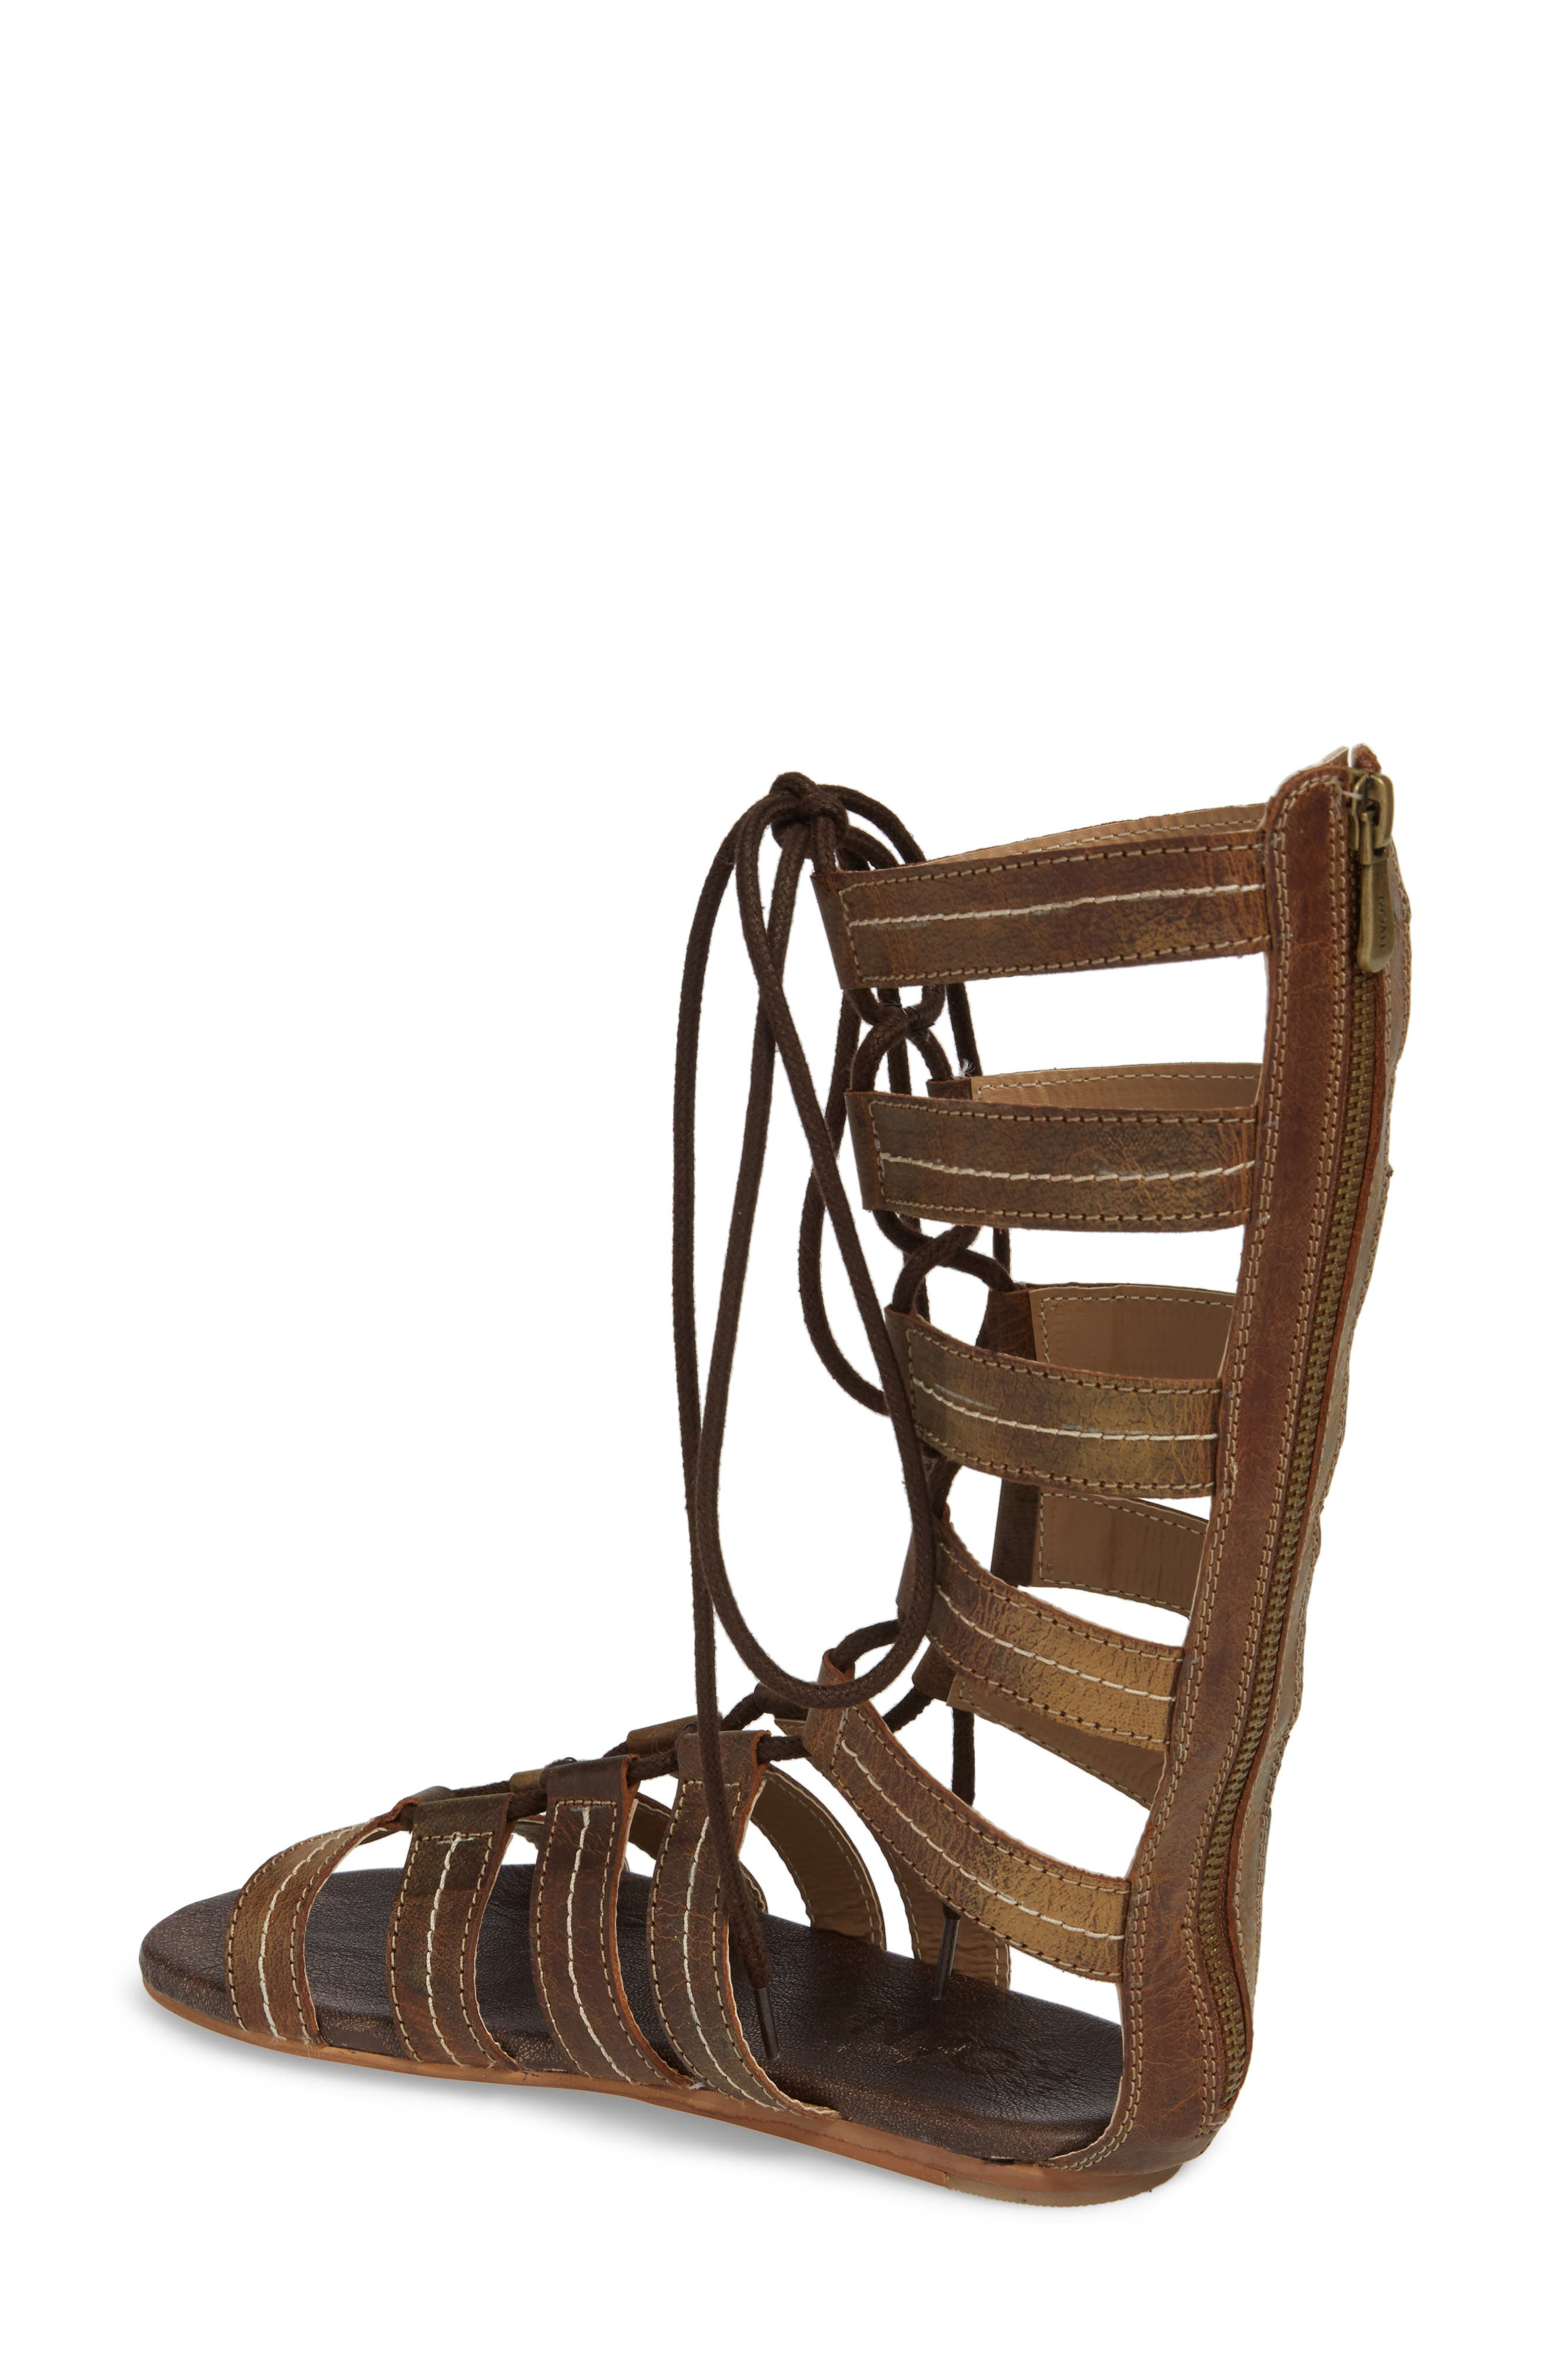 Rhea Lace-Up Gladiator Sandal,                             Alternate thumbnail 2, color,                             Tan Greenland